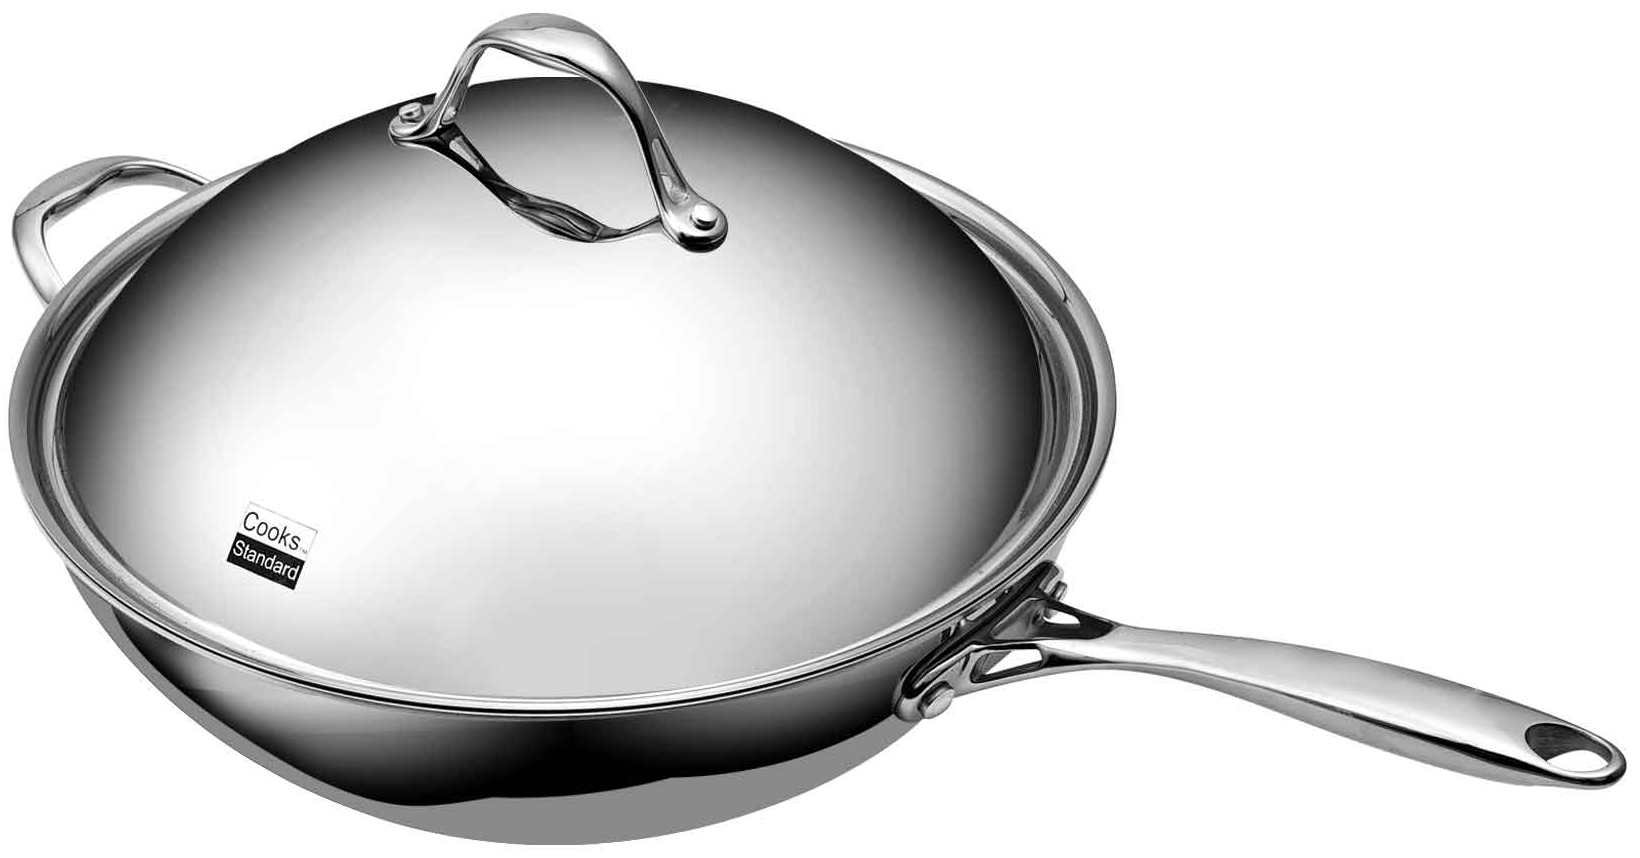 Cooks Standard 13-Inch Multi-Ply Clad Stainless Steel Wok Stir Fry Pan with Dome Lid by Cooks Standard (Image #5)